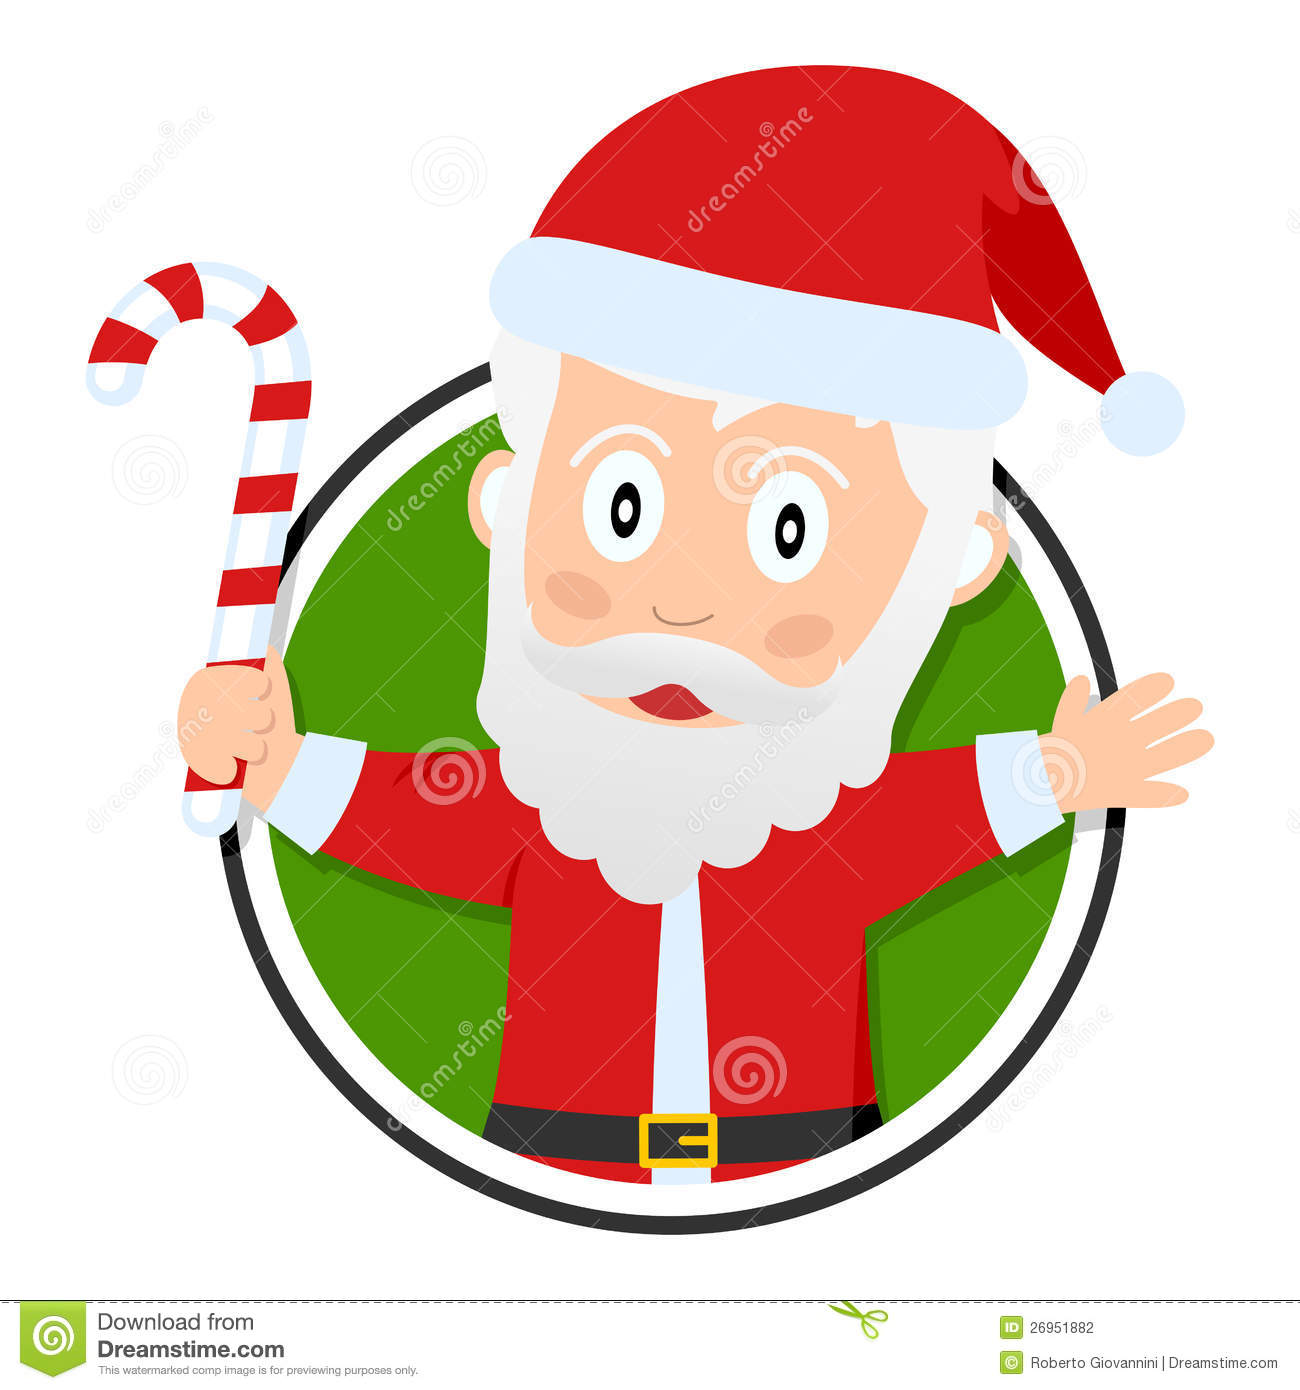 Christmas or Santa Claus Logo